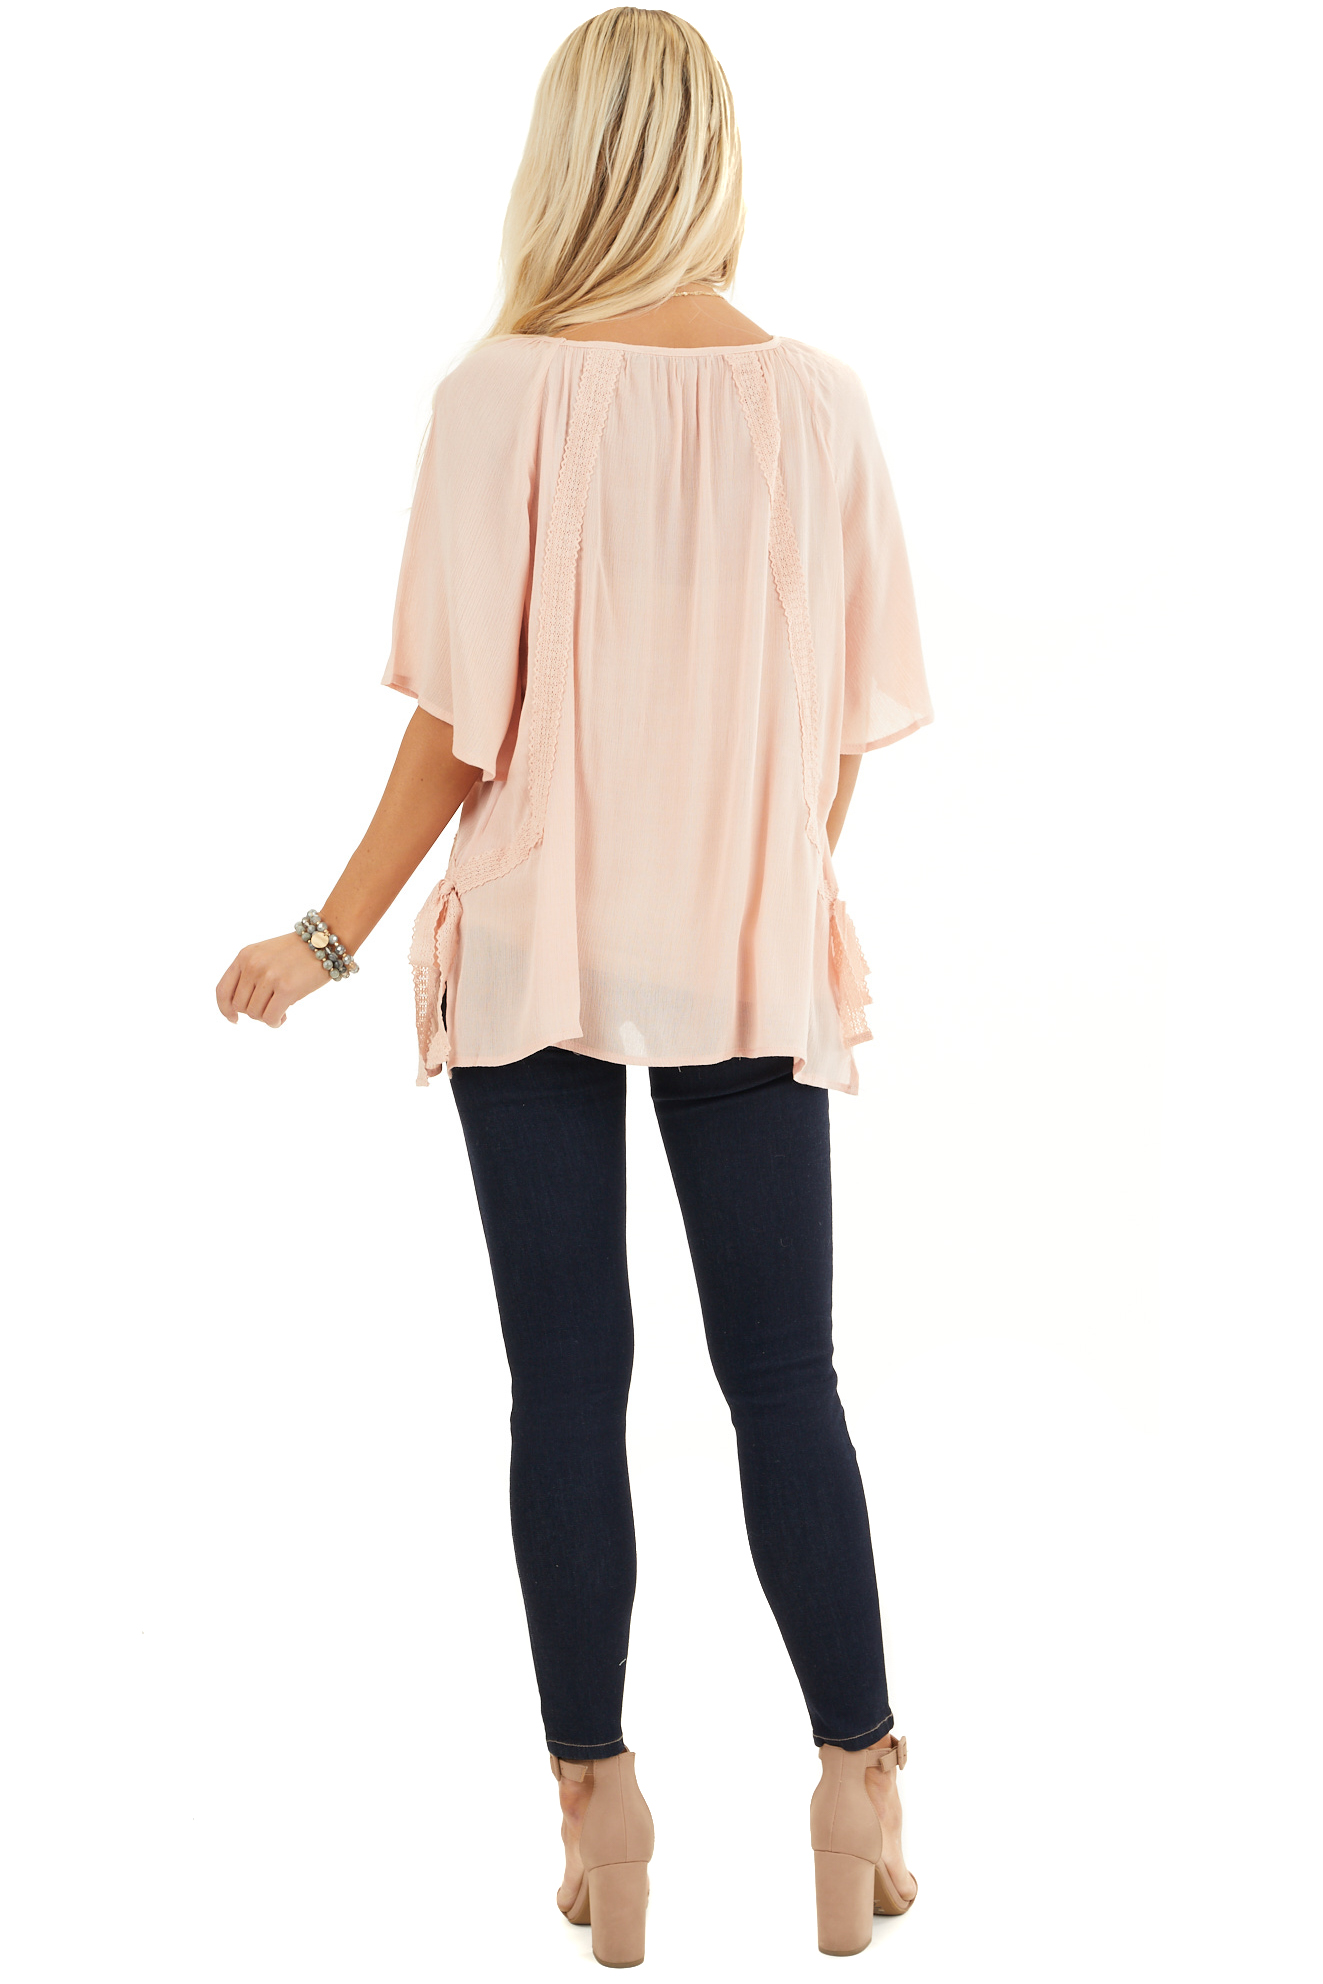 Blush Short Sleeve Top with Crochet Lace and Tie Detail back full body